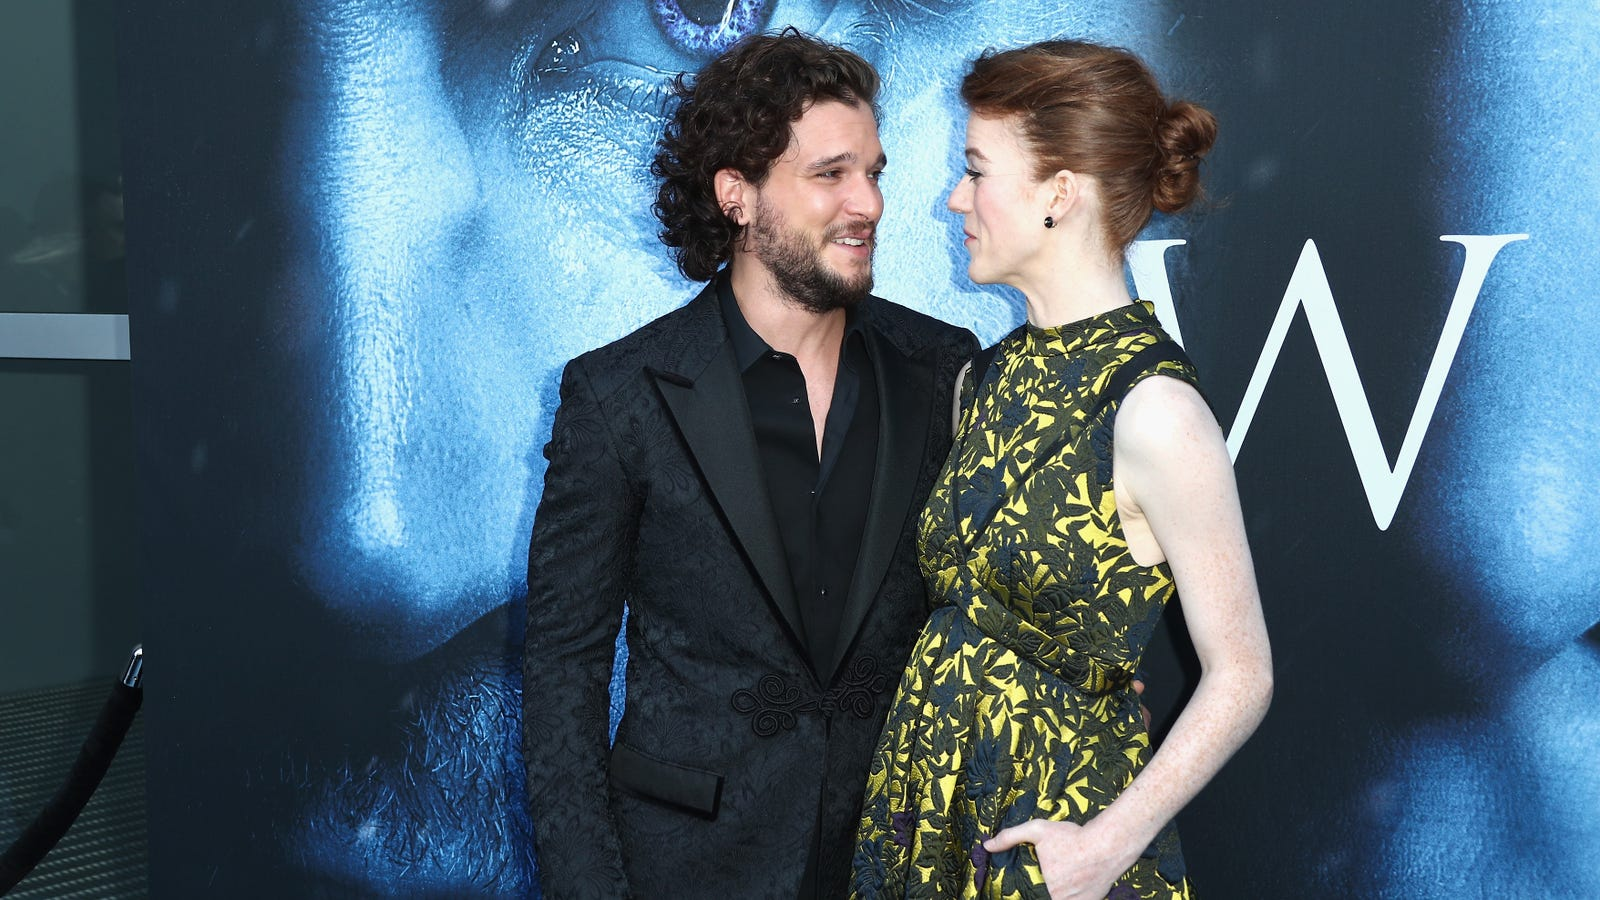 Everyone Dressed WAY Too Casual For theGame of Thrones Premiere Red Carpet